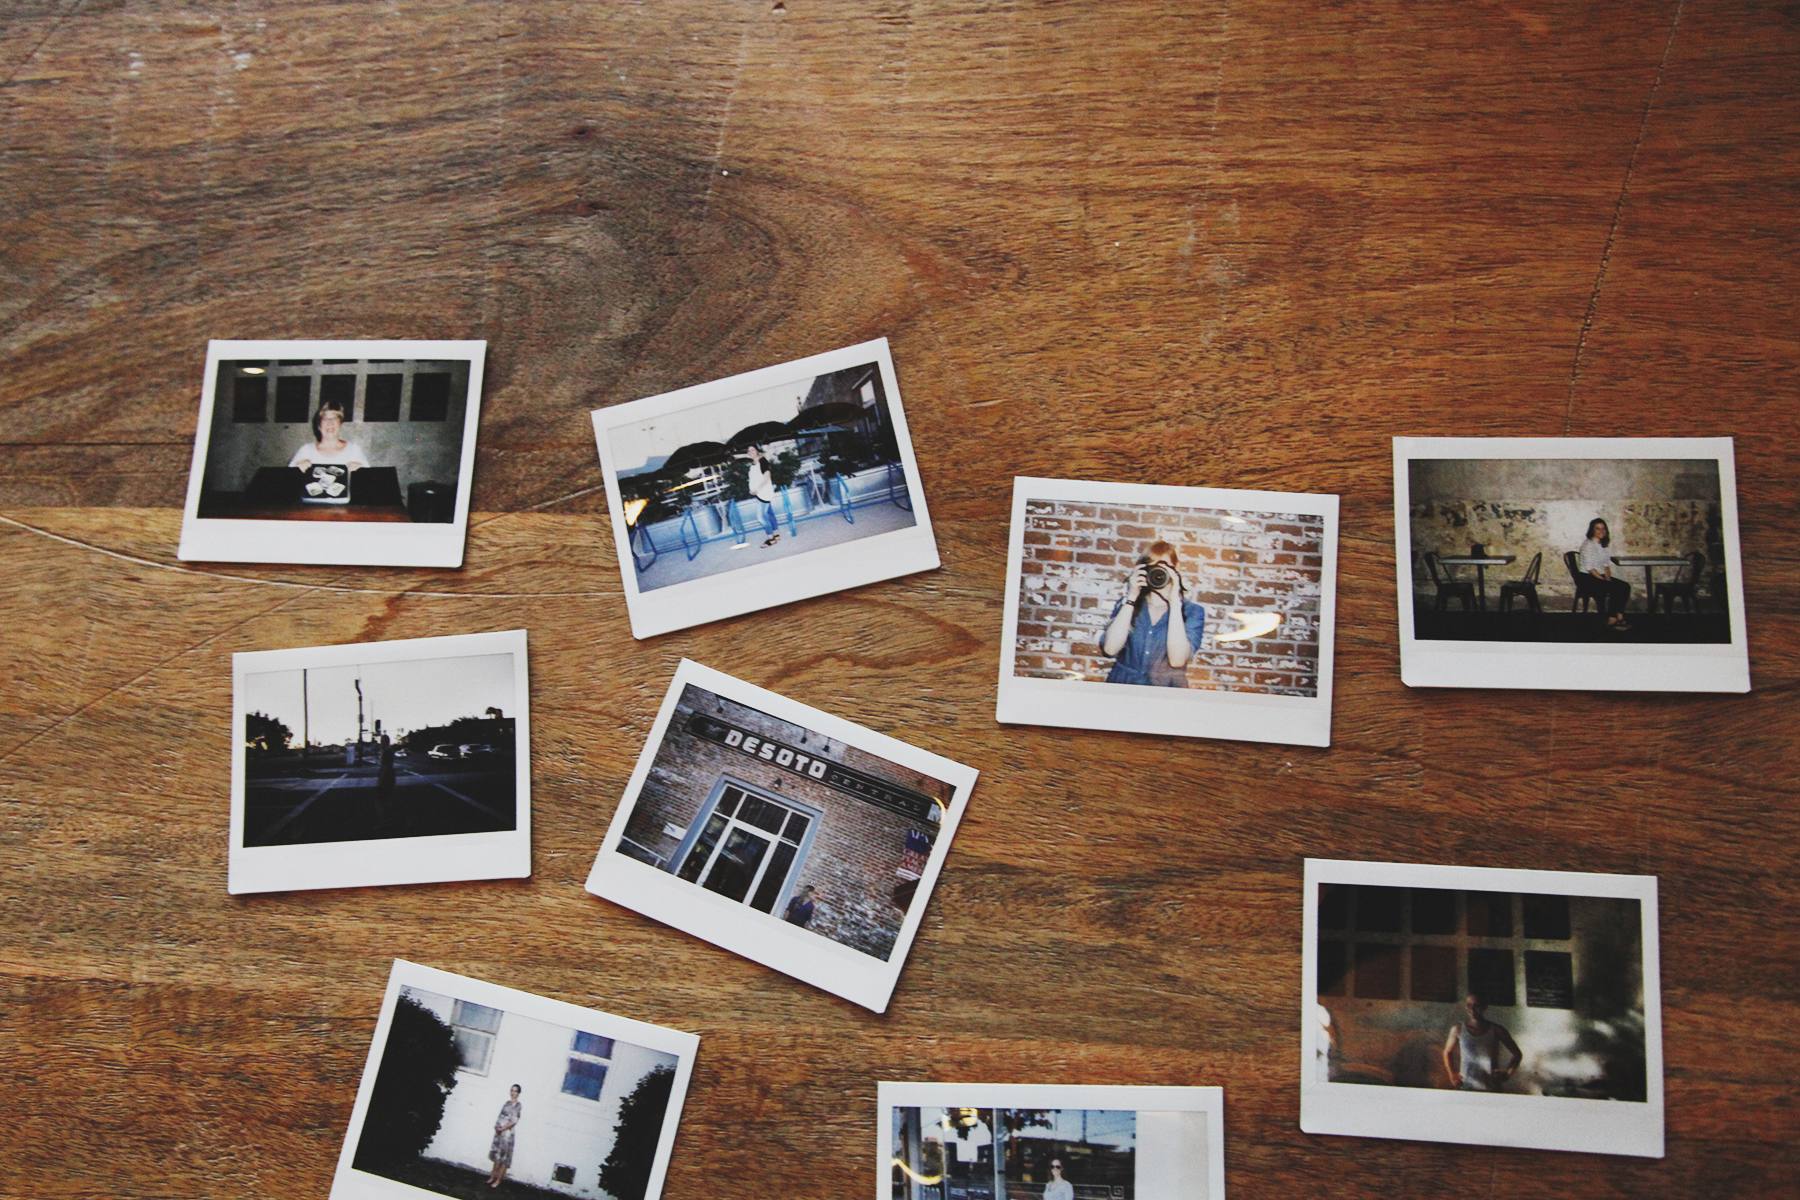 Polaroids of the attendees. I am blessed to partake in a small part of their archiving pursuits.